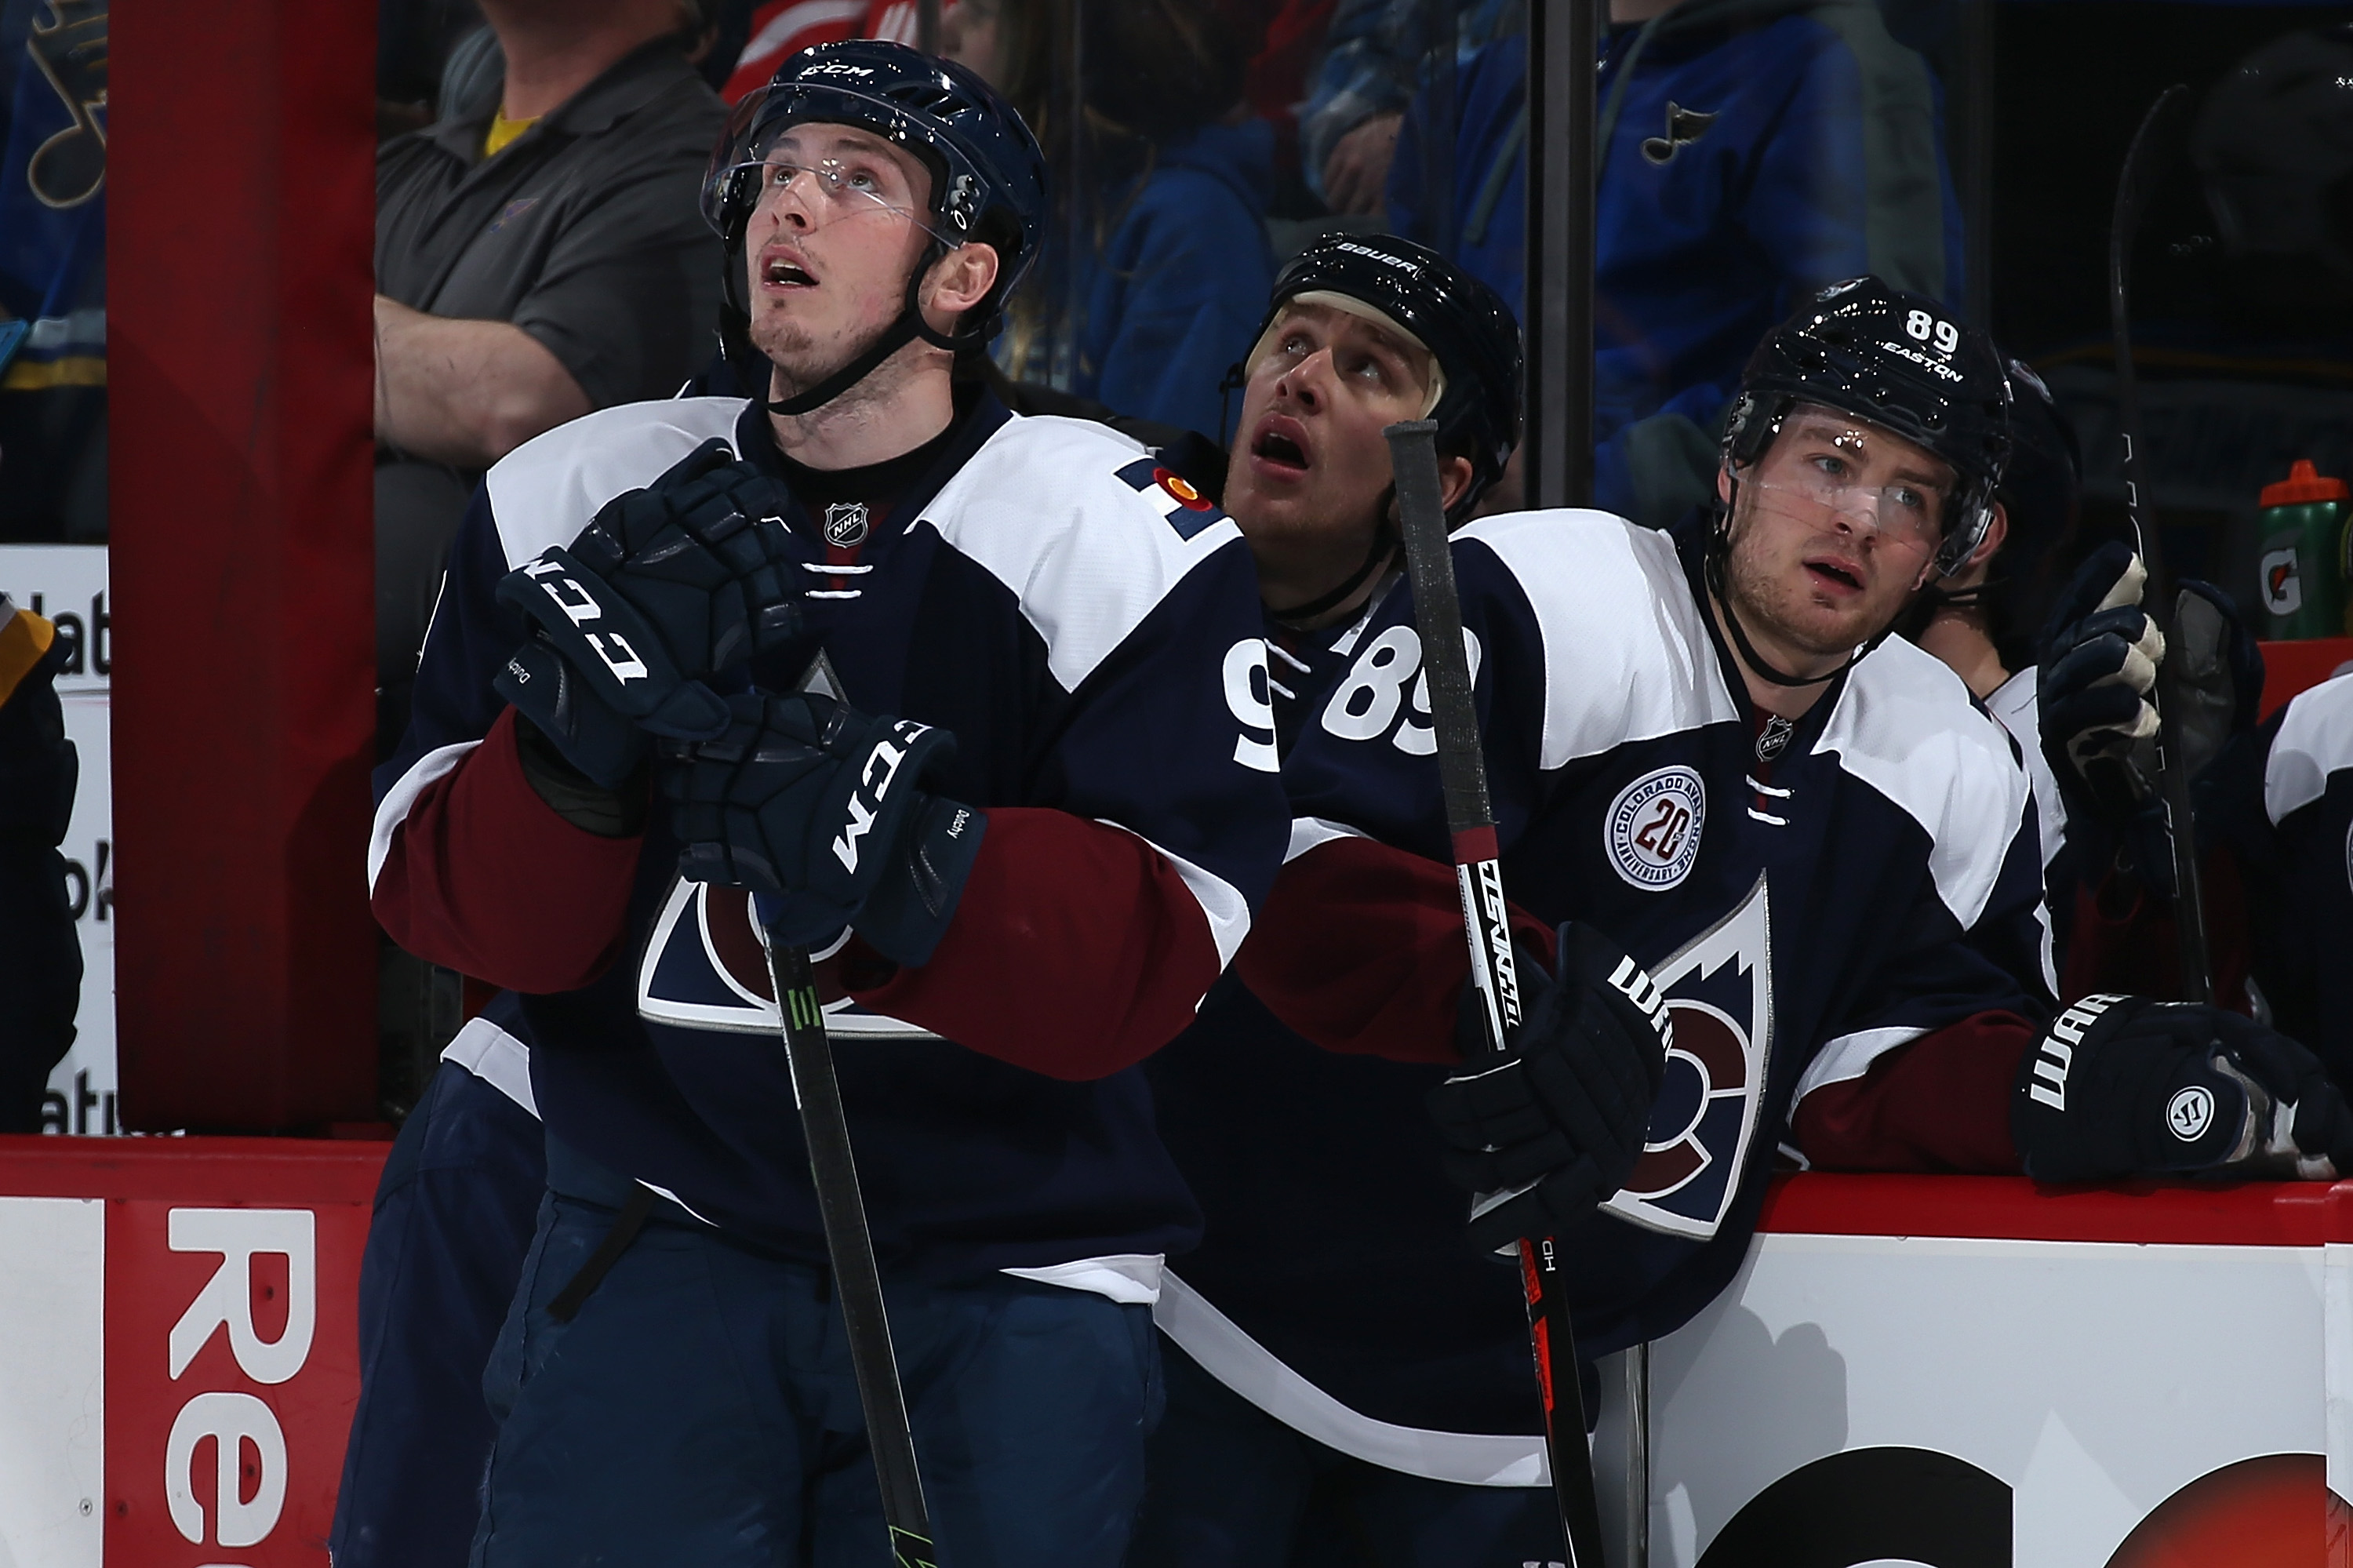 DENVER, COLORADO - APRIL 03: Matt Duchene #9, Shawn Matthias #18 and Mikkel Boedker #89 of the Colorado Avalanche look on as the St. Louis Blues celebrate a goal by Colton Parayko #55 of the St. Louis Blues to take a 3-0 lead in the first period at Pepsi Center on April 3, 2016 in Denver, Colorado. The Blues defeated the Avalanche 5-1. (Photo by Doug Pensinger/Getty Images)